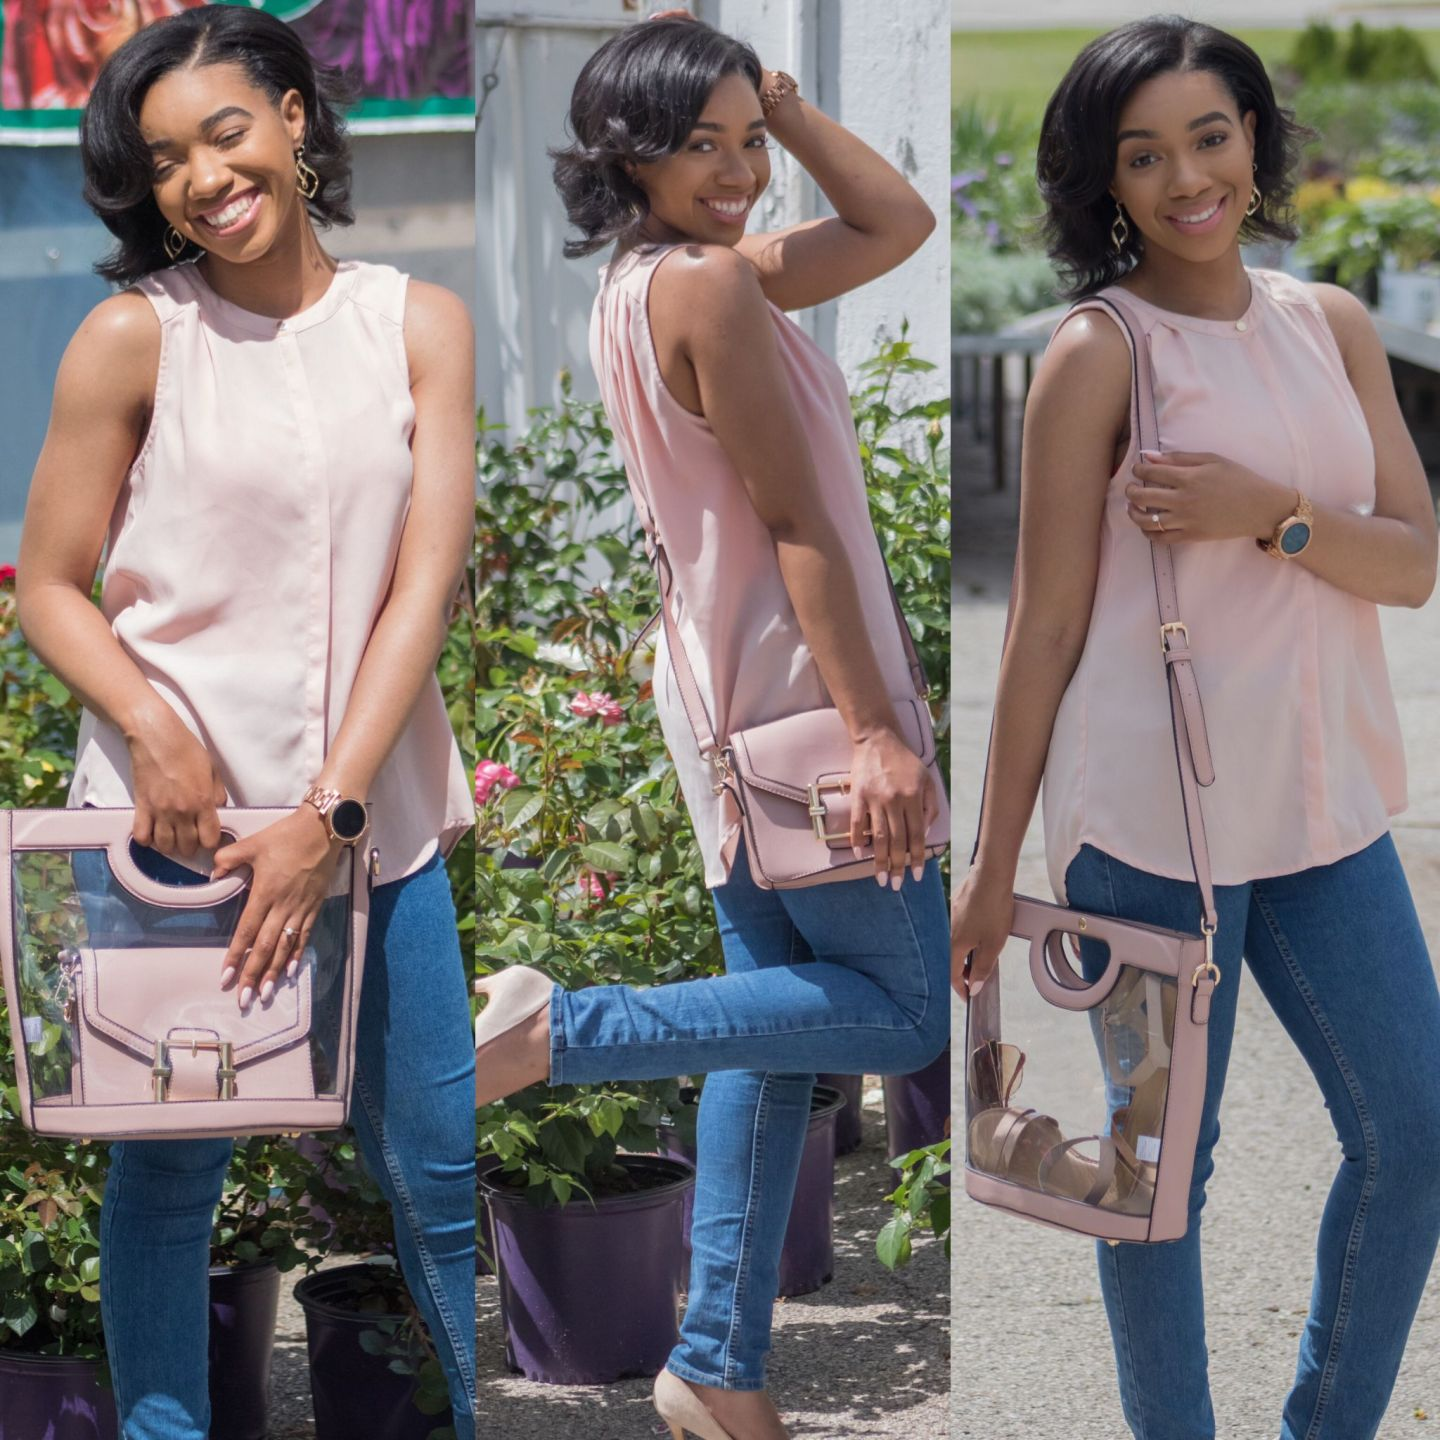 The Perfect Summer Bag: Styled 3 Different Ways